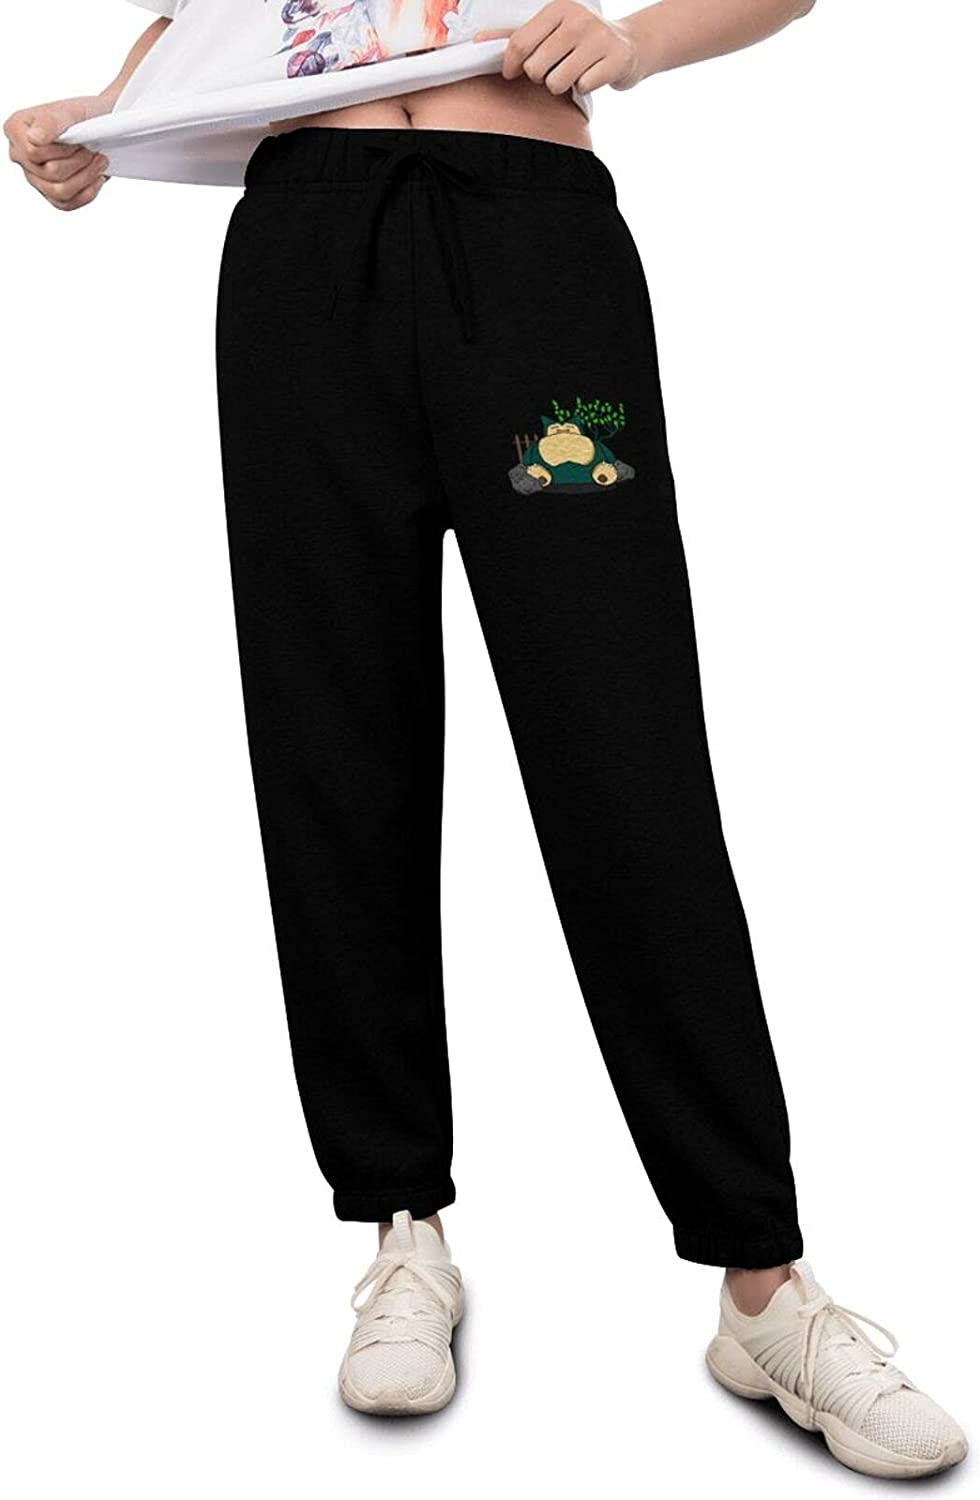 Hiacpy Snorlax Ladies Sweatpants Max 50% OFF Ranking TOP6 Trousers wit Jogger